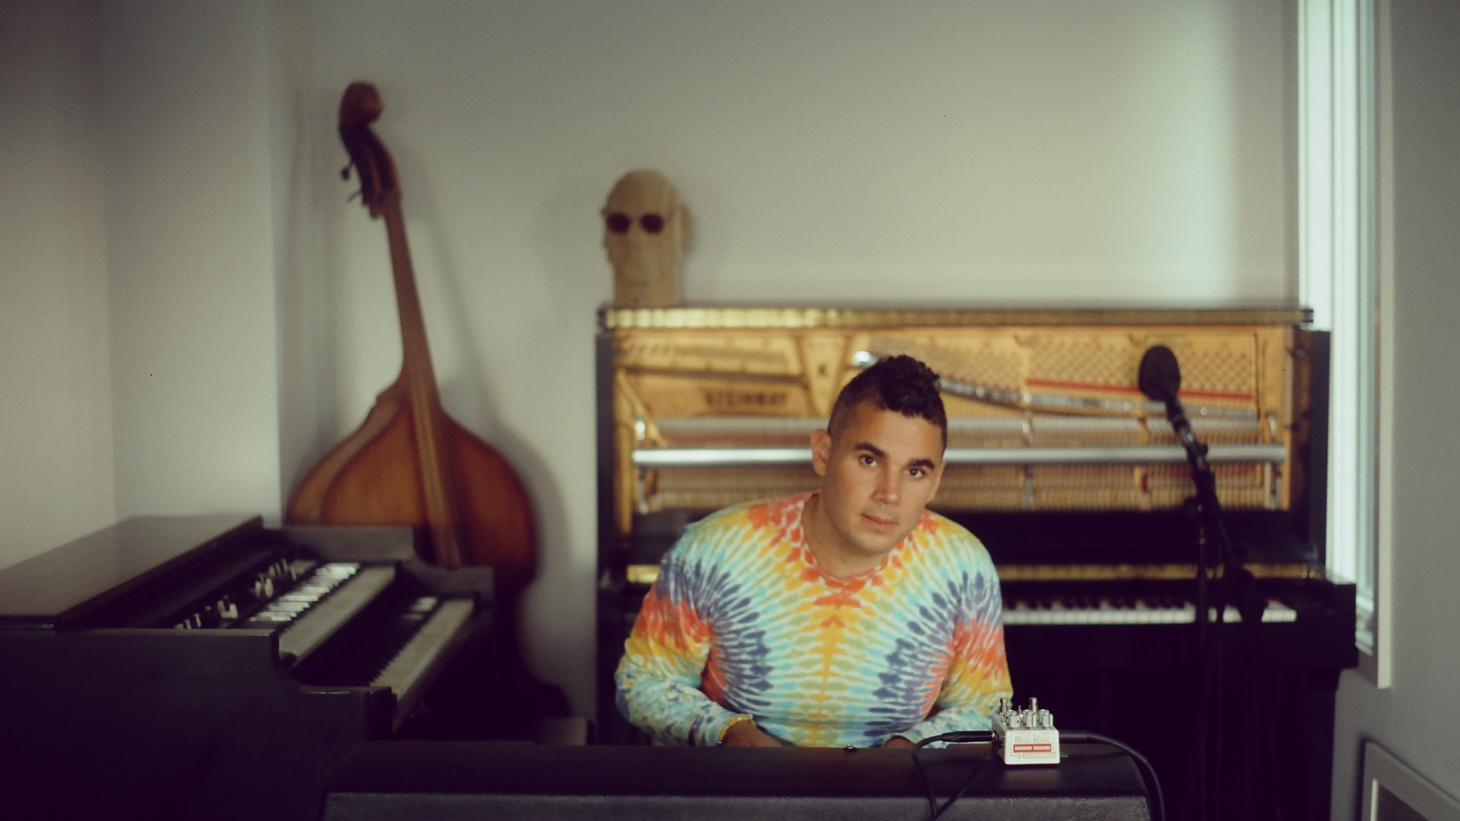 """Feeling like you need to break out and take a road trip? Grab your love, pack your bags, and plug in Rostam's """"4Runner."""" With a 12 string guitar and bright percussion bringing the sunshine, this track explodes with happy euphoria."""